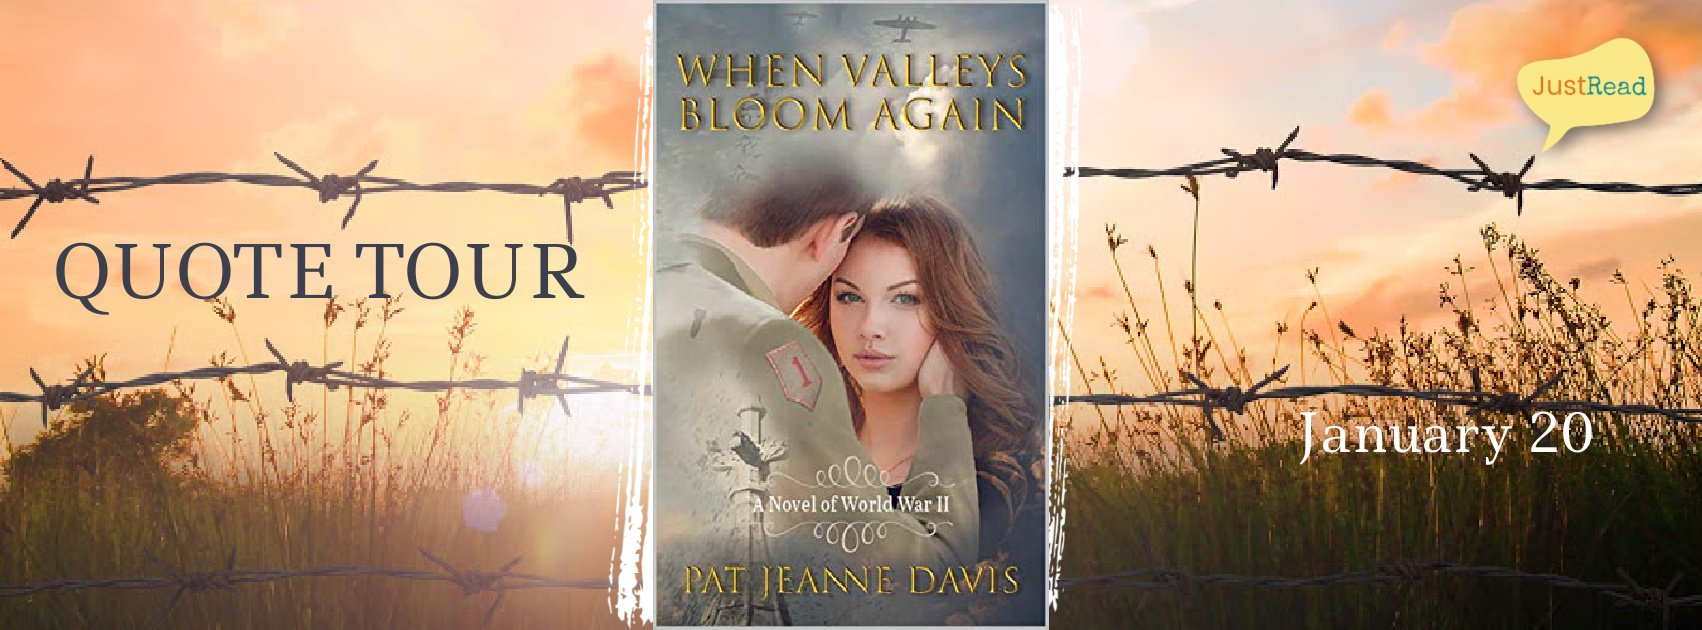 When Valleys Bloom Again JustRead Quote Tour